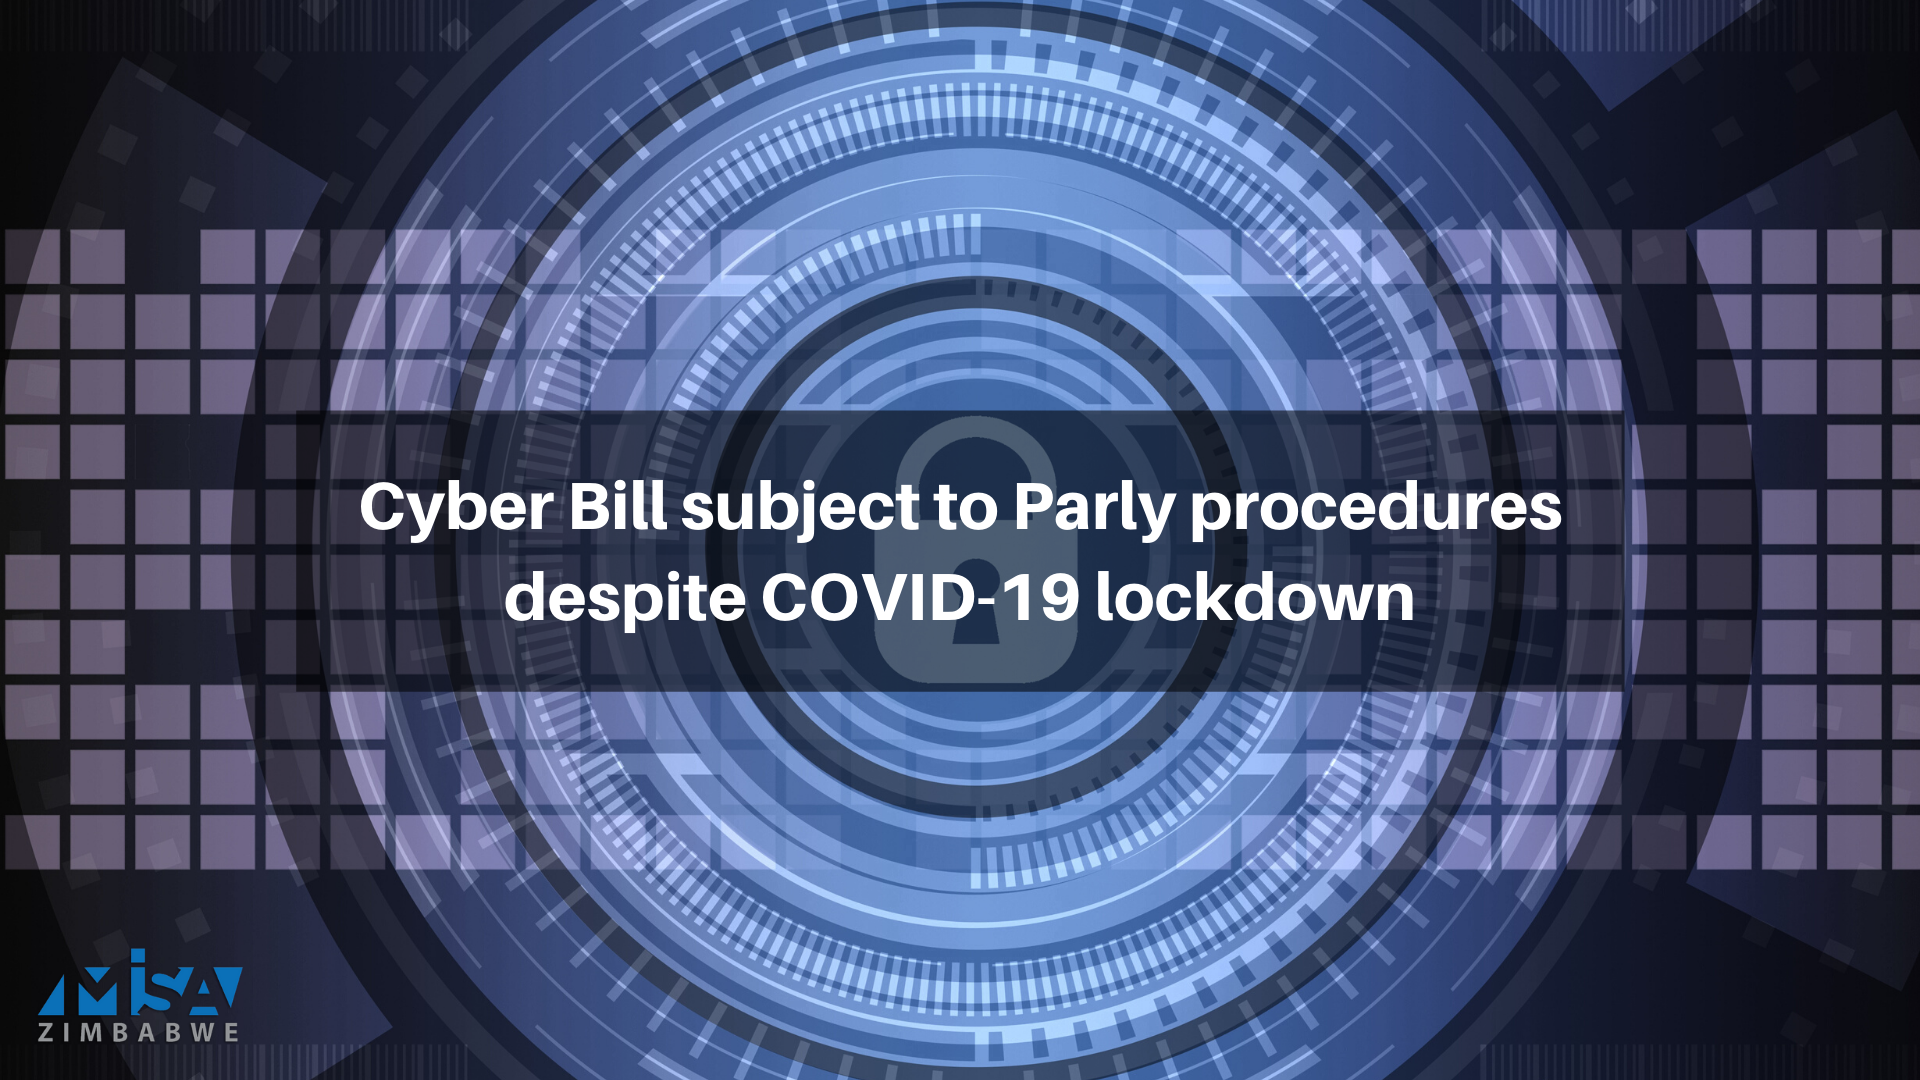 Cyber Bill subject to Parly procedures despite COVID-19 lockdown